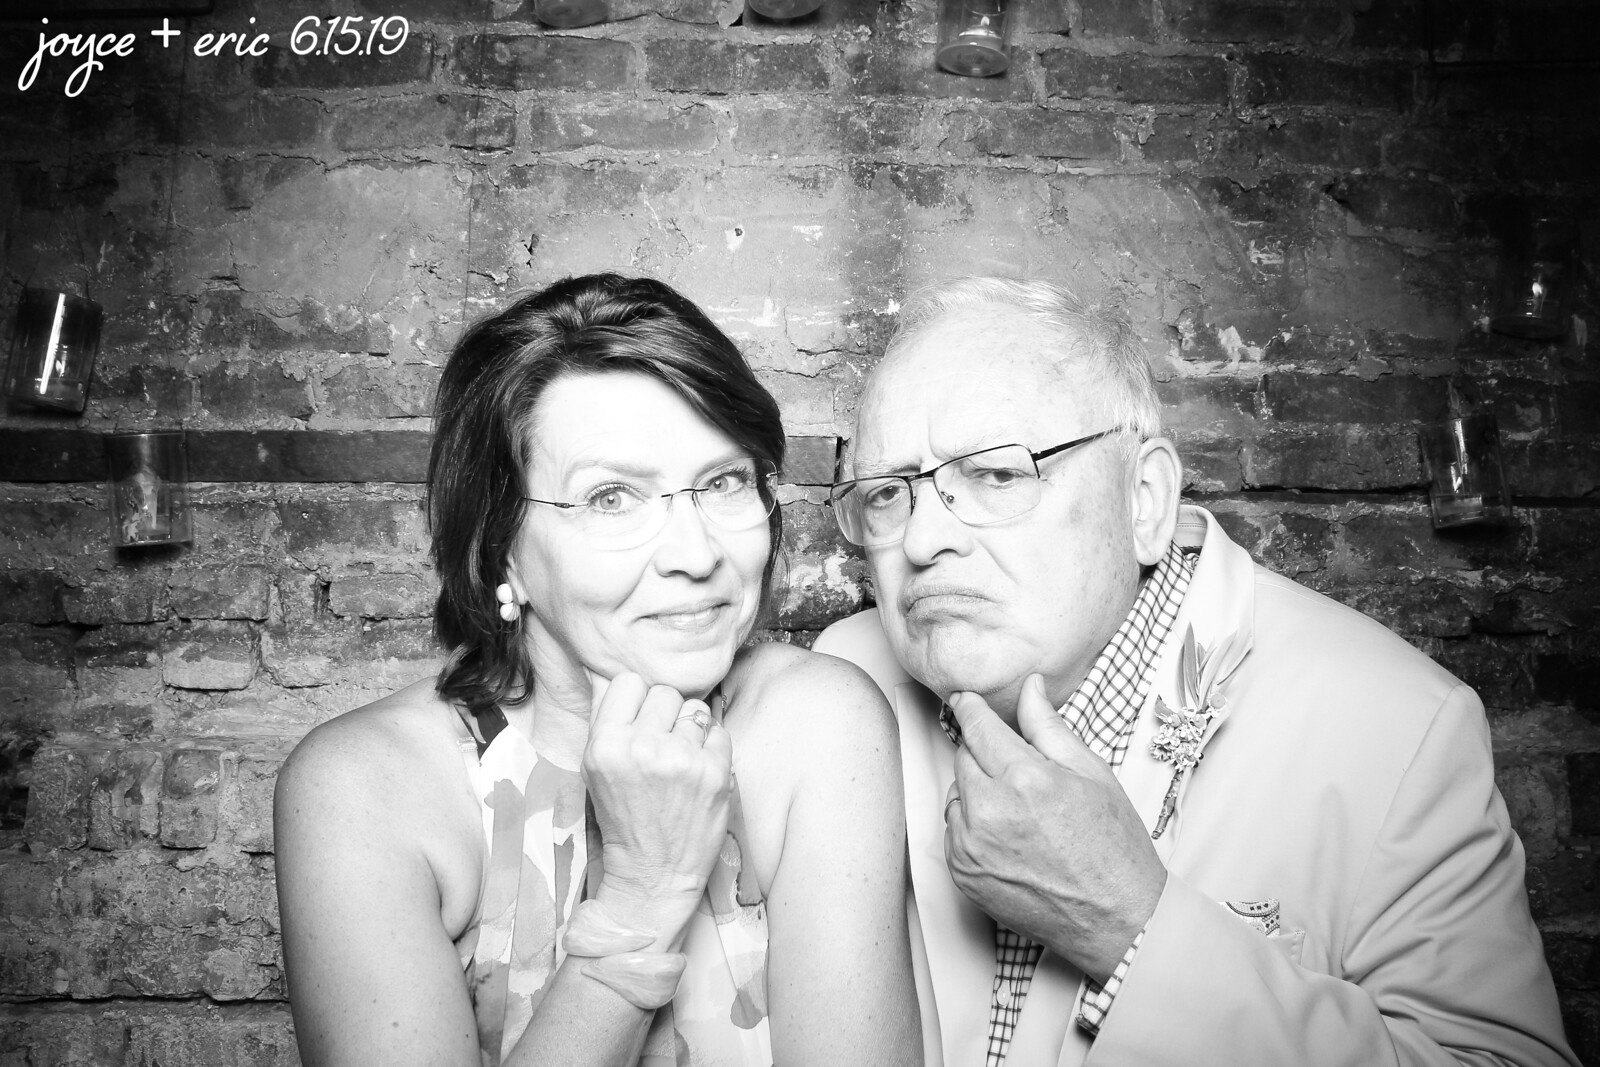 Chicago_Vintage_Wedding_Photobooth_New_Leaf_29.jpg